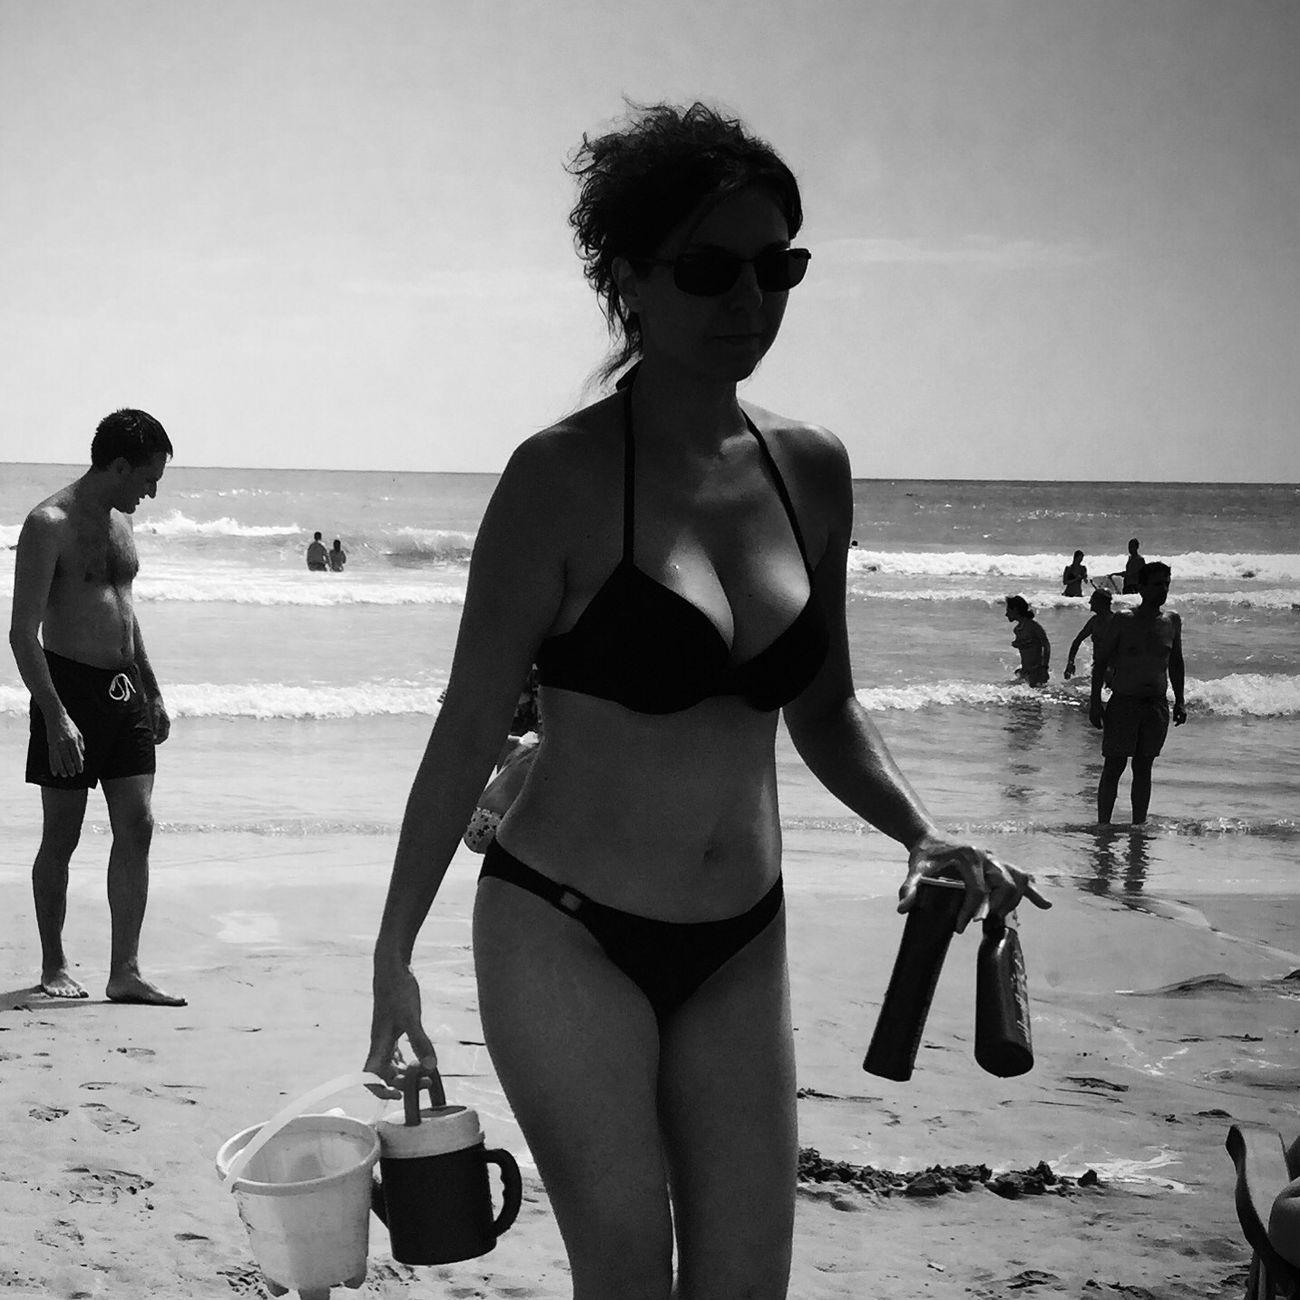 Sea Vacations Woman Bw #bnw #BWcollaboration #istanbul #blackwhite #blackandwhite